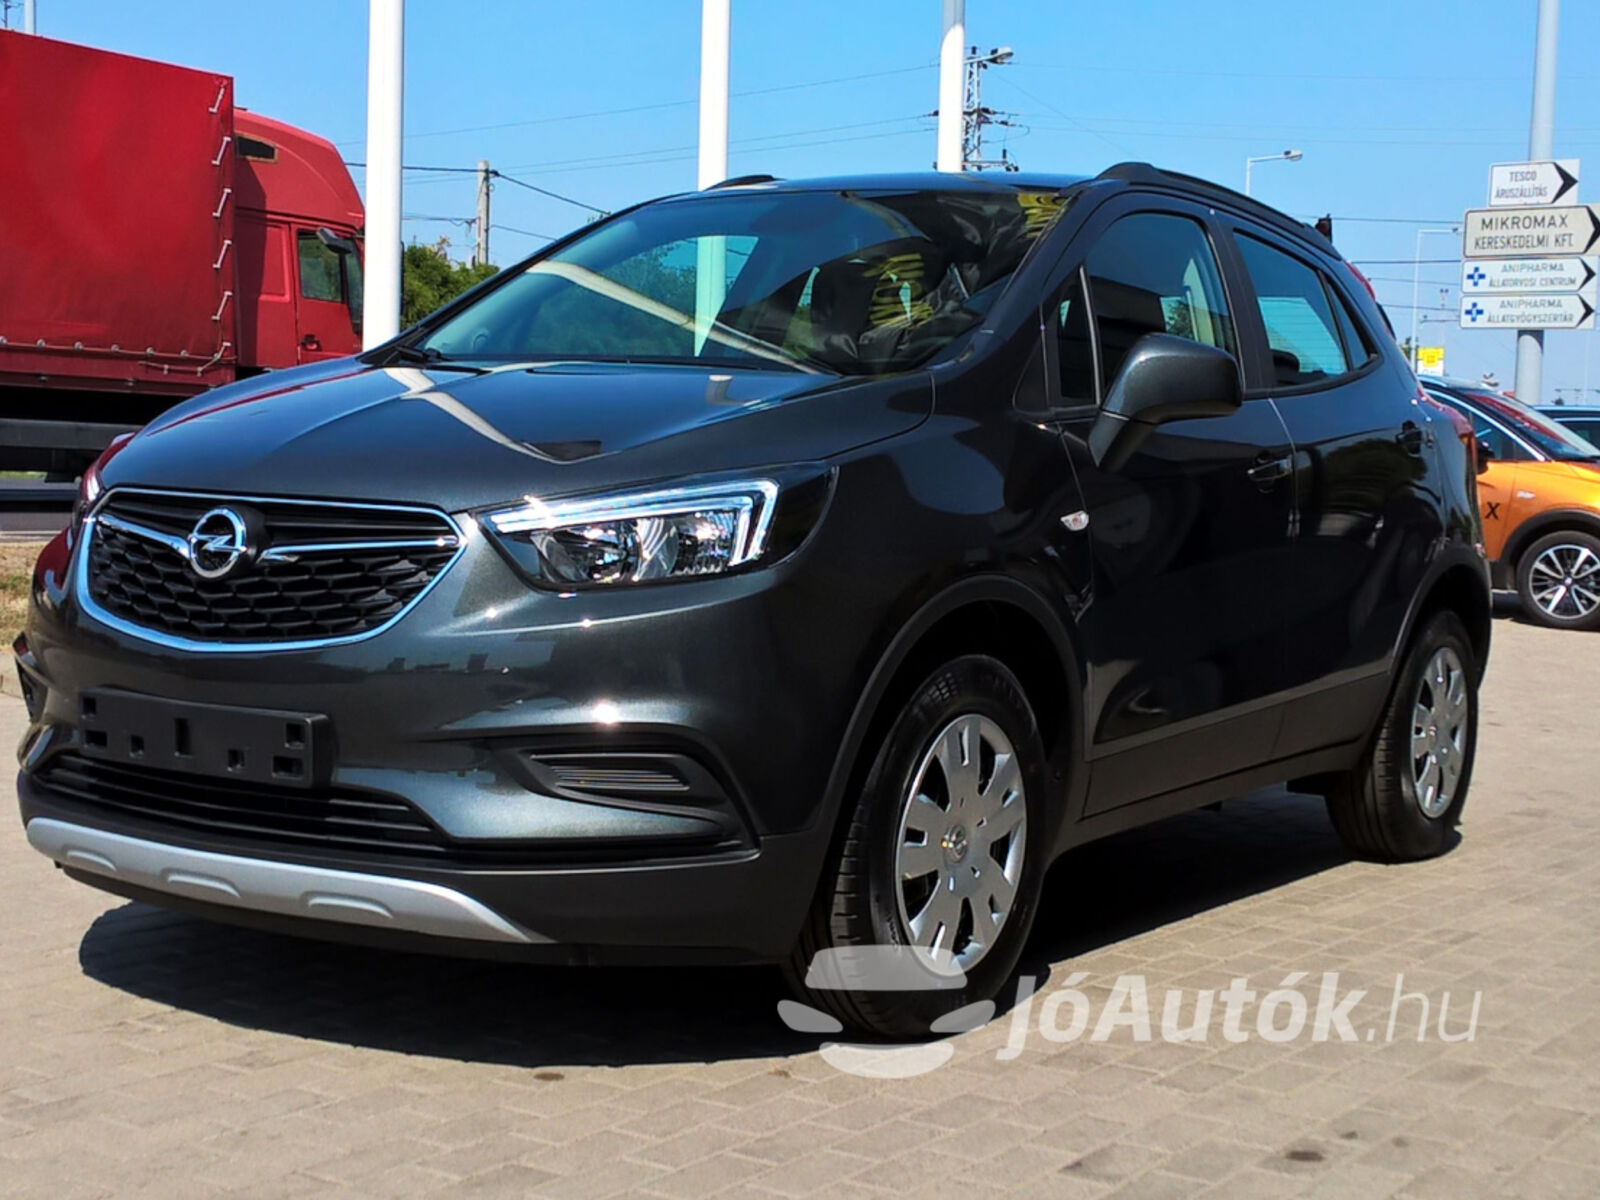 OPEL Mokka 1.6 Selection Start-Stop EURO6 - bal eleje